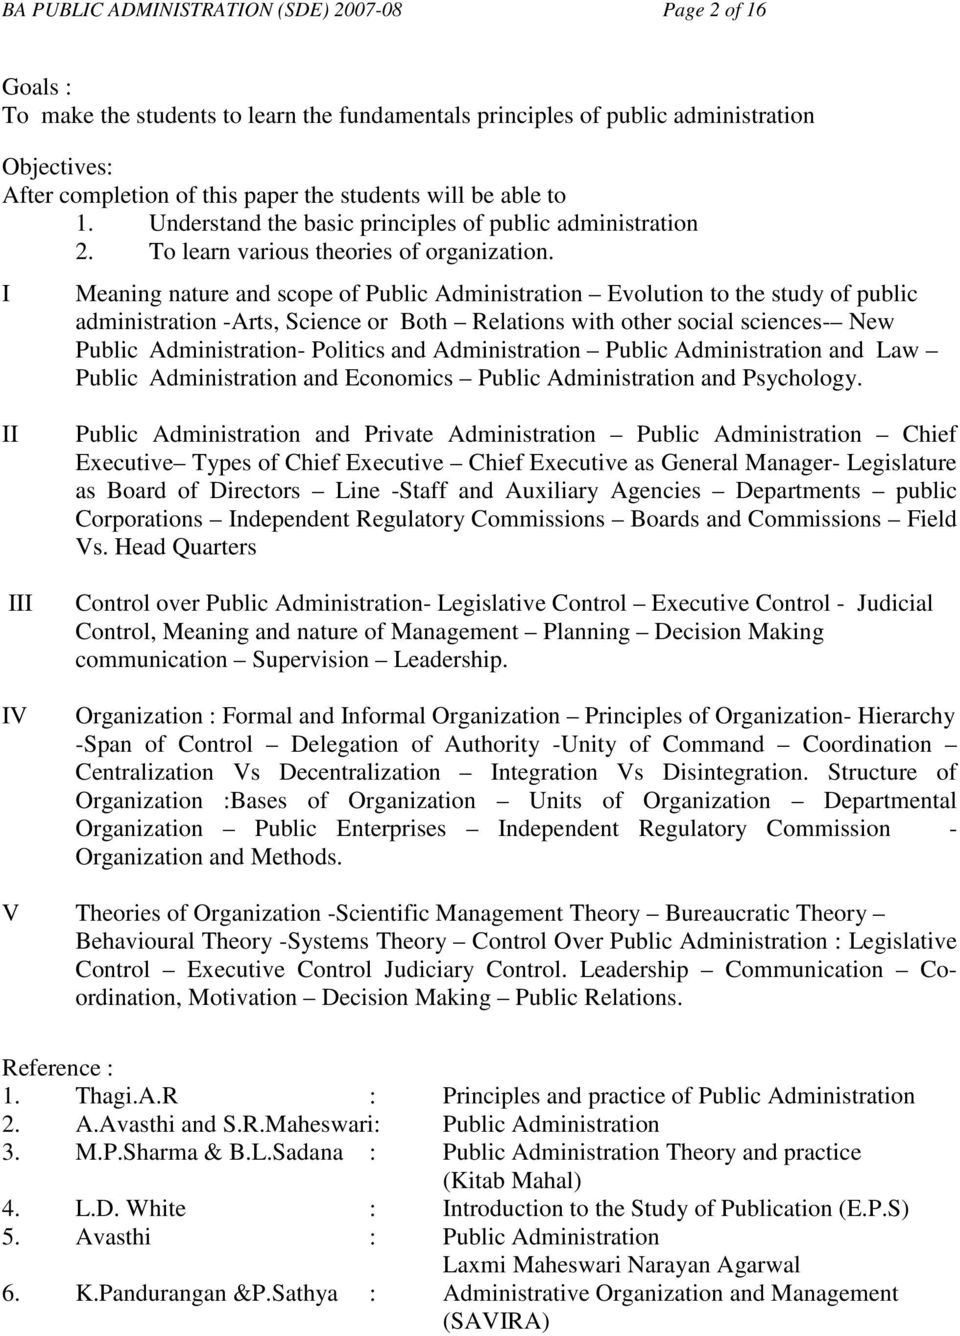 I Meaning nature and scope of Public Administration Evolution to the study of public administration -Arts, Science or Both Relations with other social sciences- New Public Administration- Politics